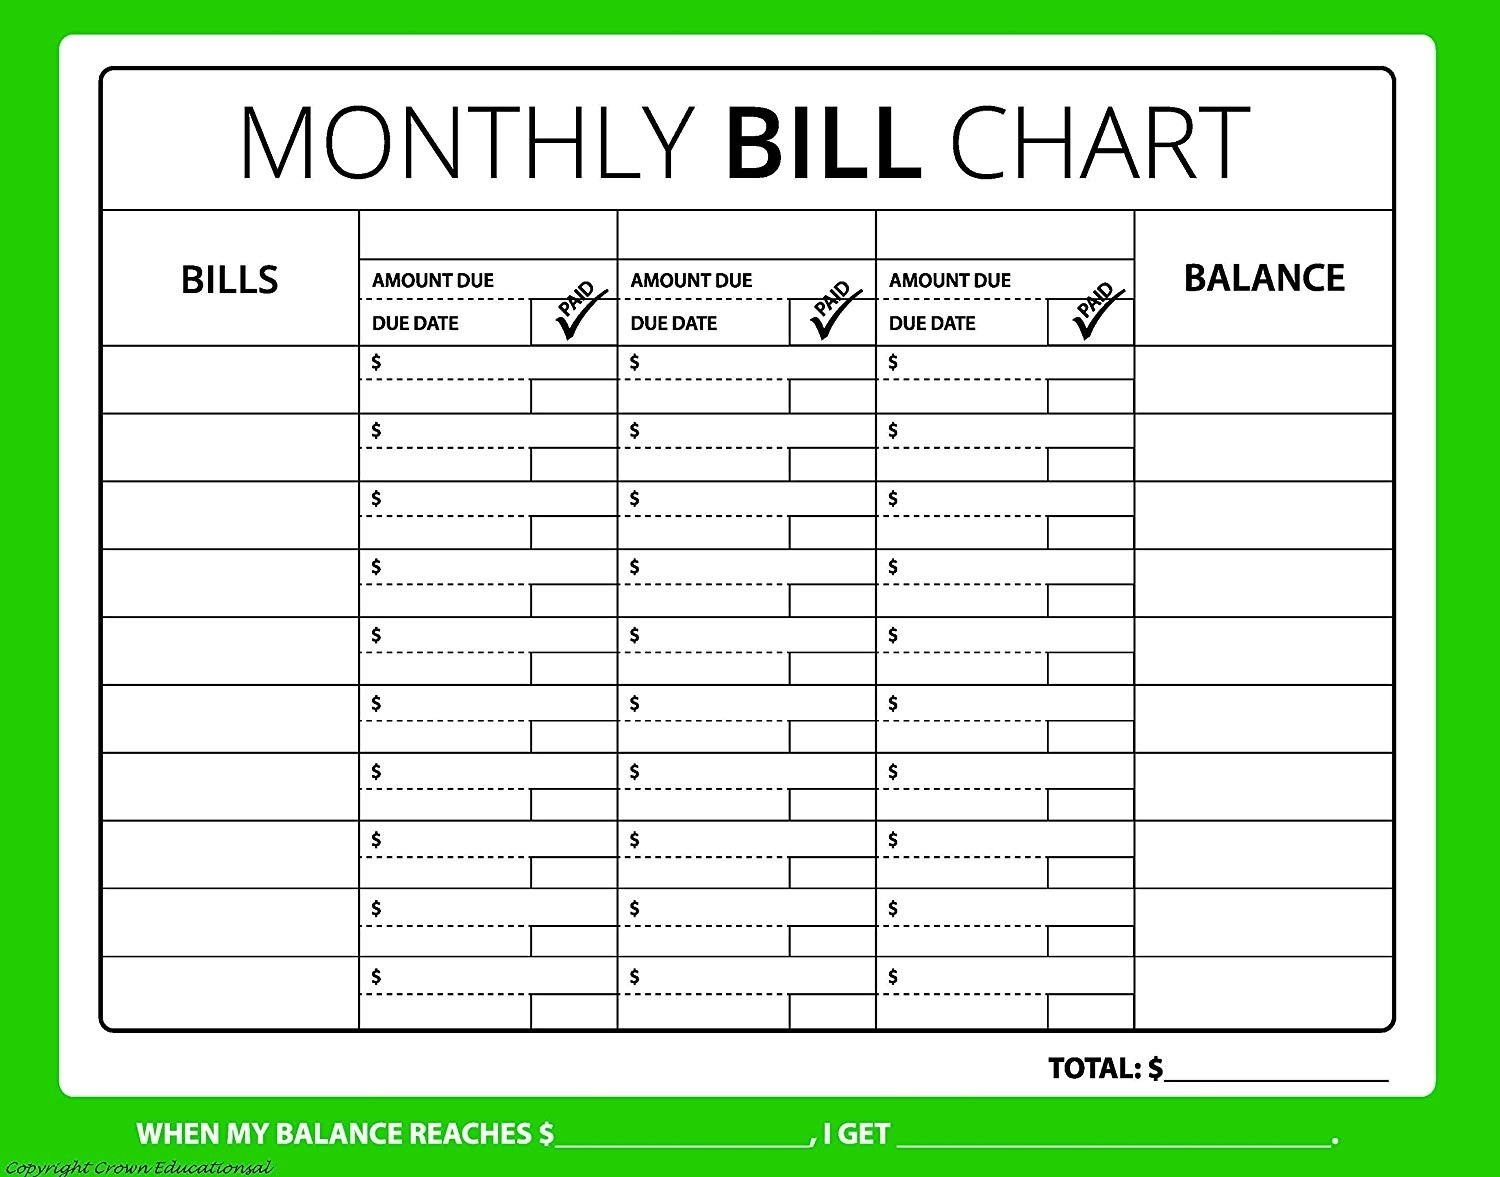 38 Factual Monthly Bill Due Date Chart-Printable Monthly Bill Chart